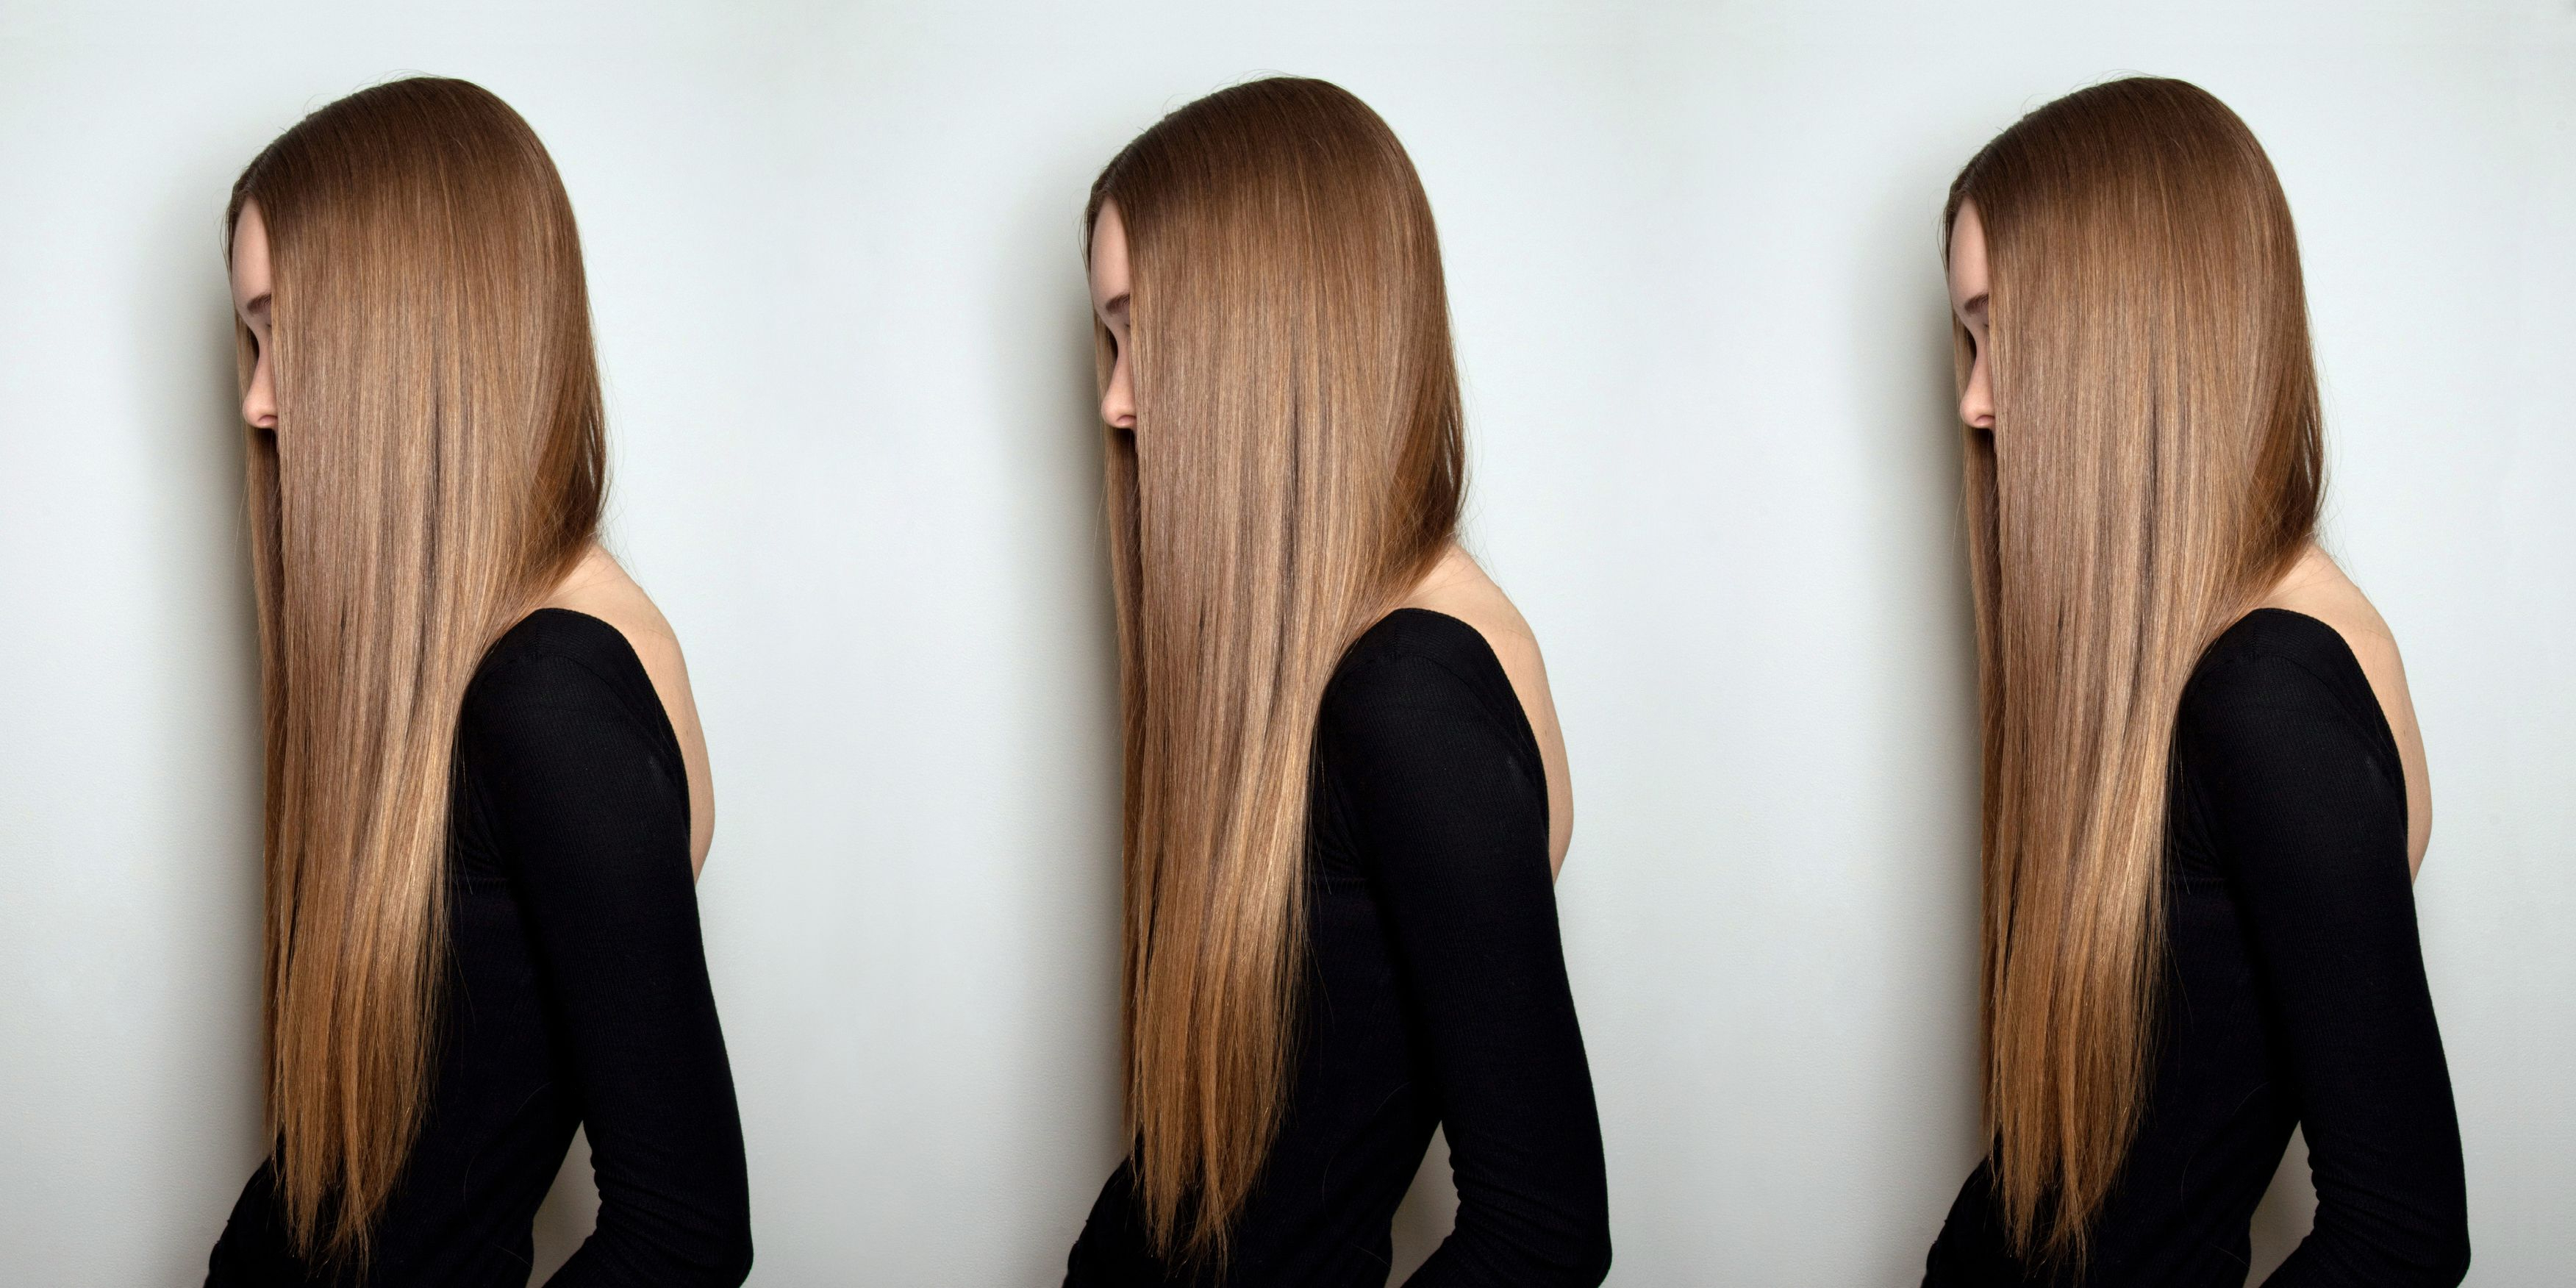 How To Straighten Hair Without Heat – Professional Heatless Hair Pertaining To Blow Dry Short Curly Hair (View 24 of 25)